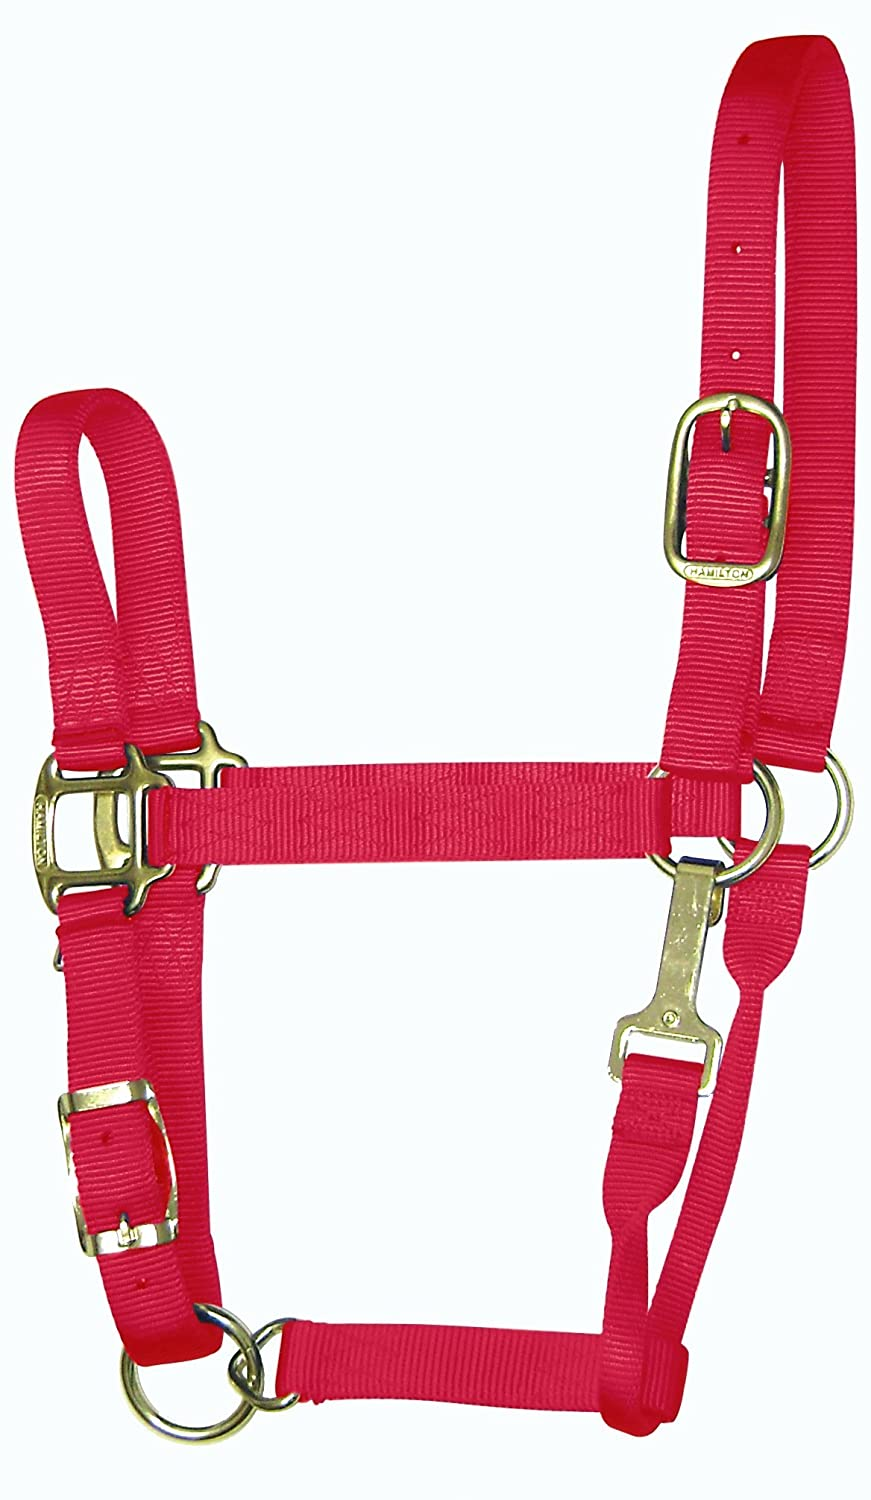 Hamilton 3-5 1 Nylon Quality Adjustable Horse Halter with Snap, Yearling, Raspberry, for Horses 300 to 500 lbs.